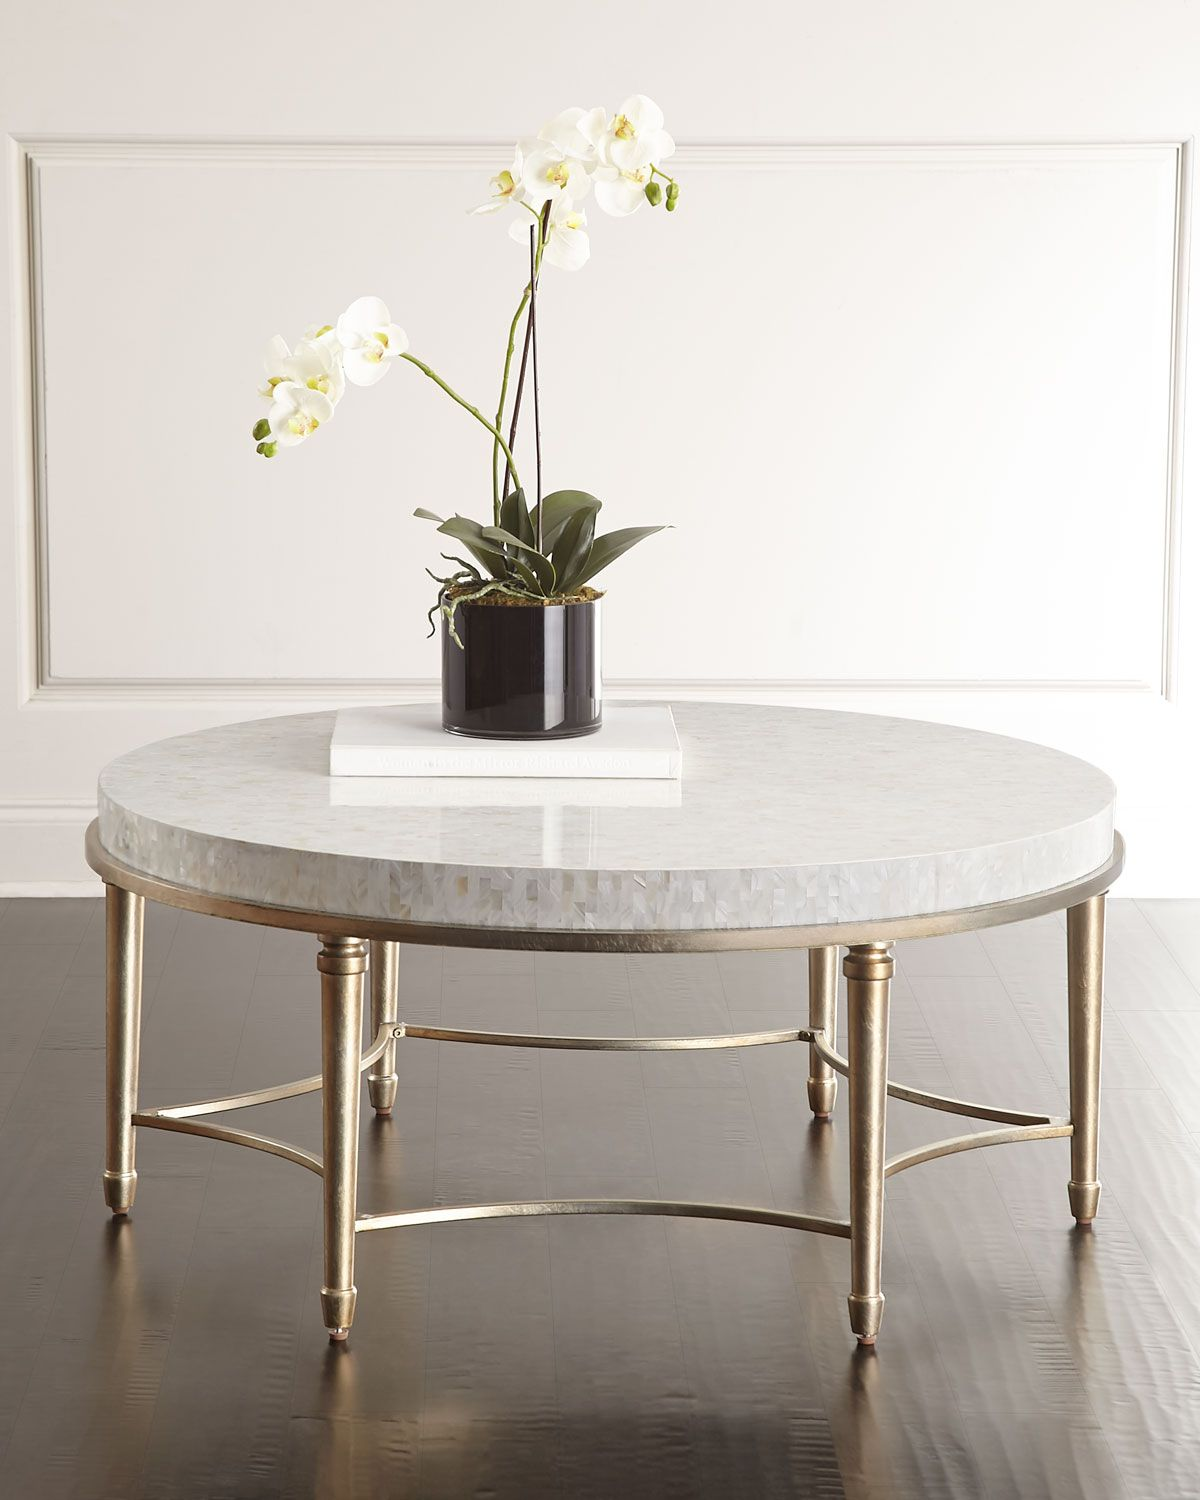 Cynthia Rowley For Hooker Furniture Aura Round Coffee Table More